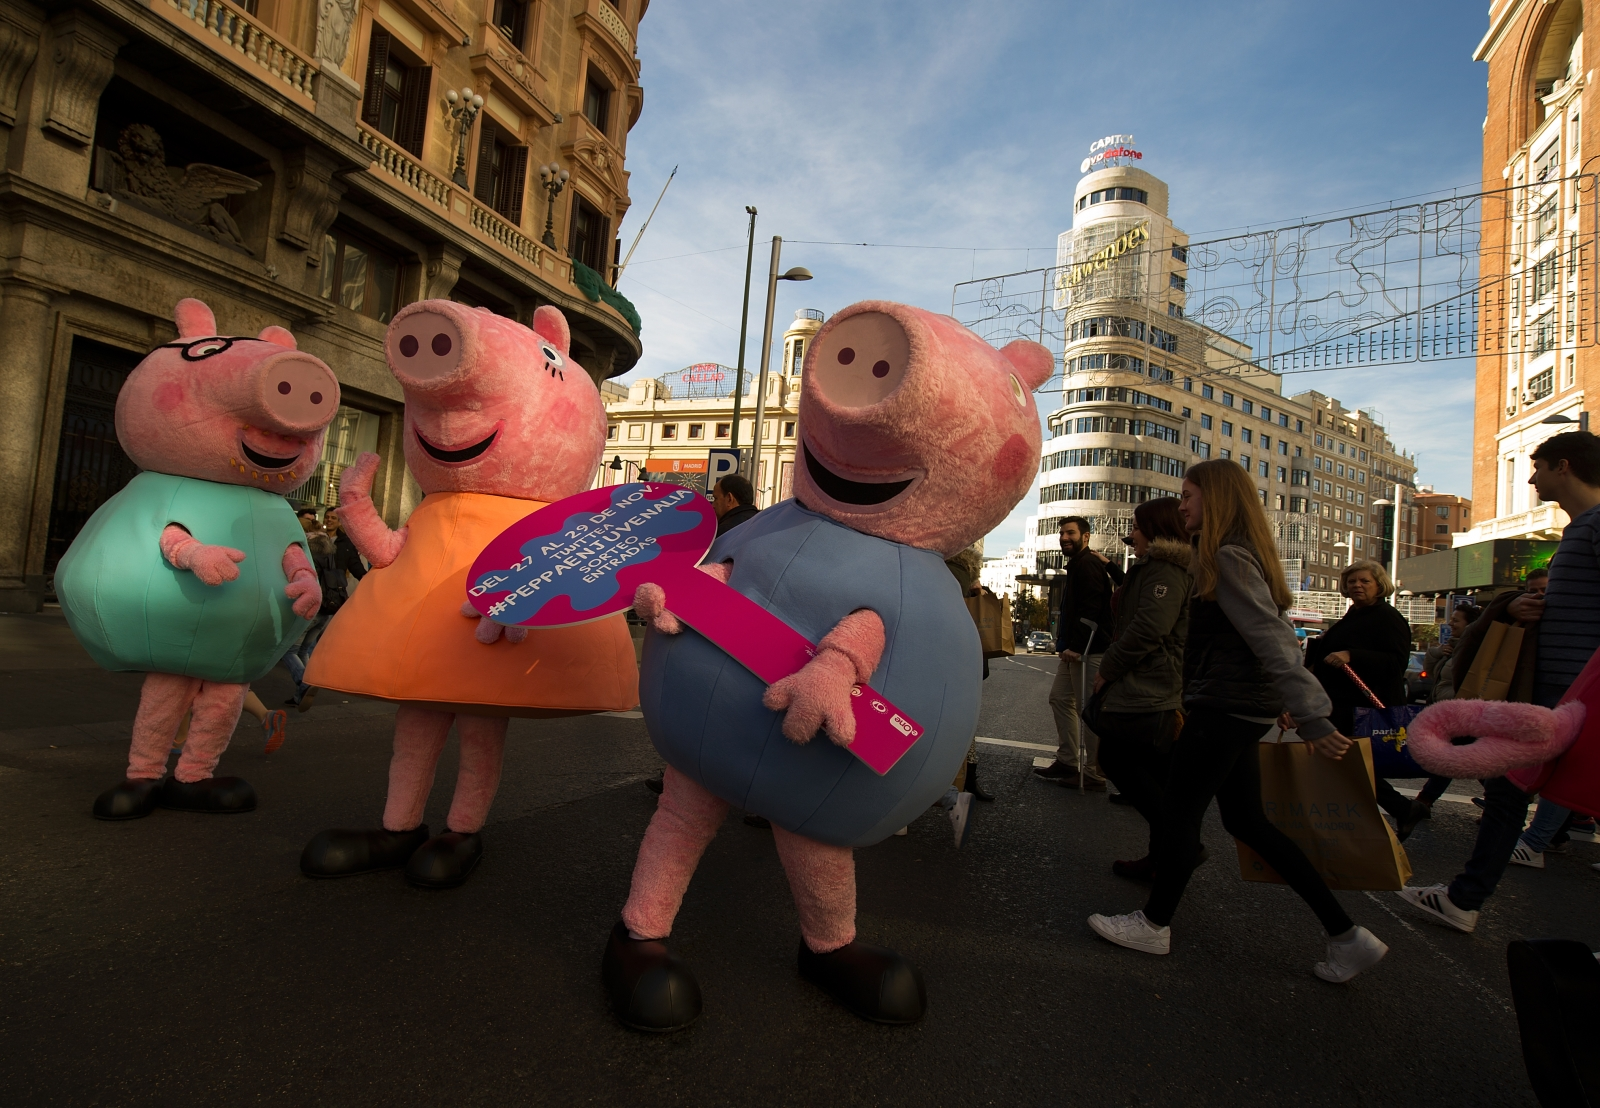 Peppa Pig owner Entertainment One to reveal today that it has rejected an ITV takeover offer